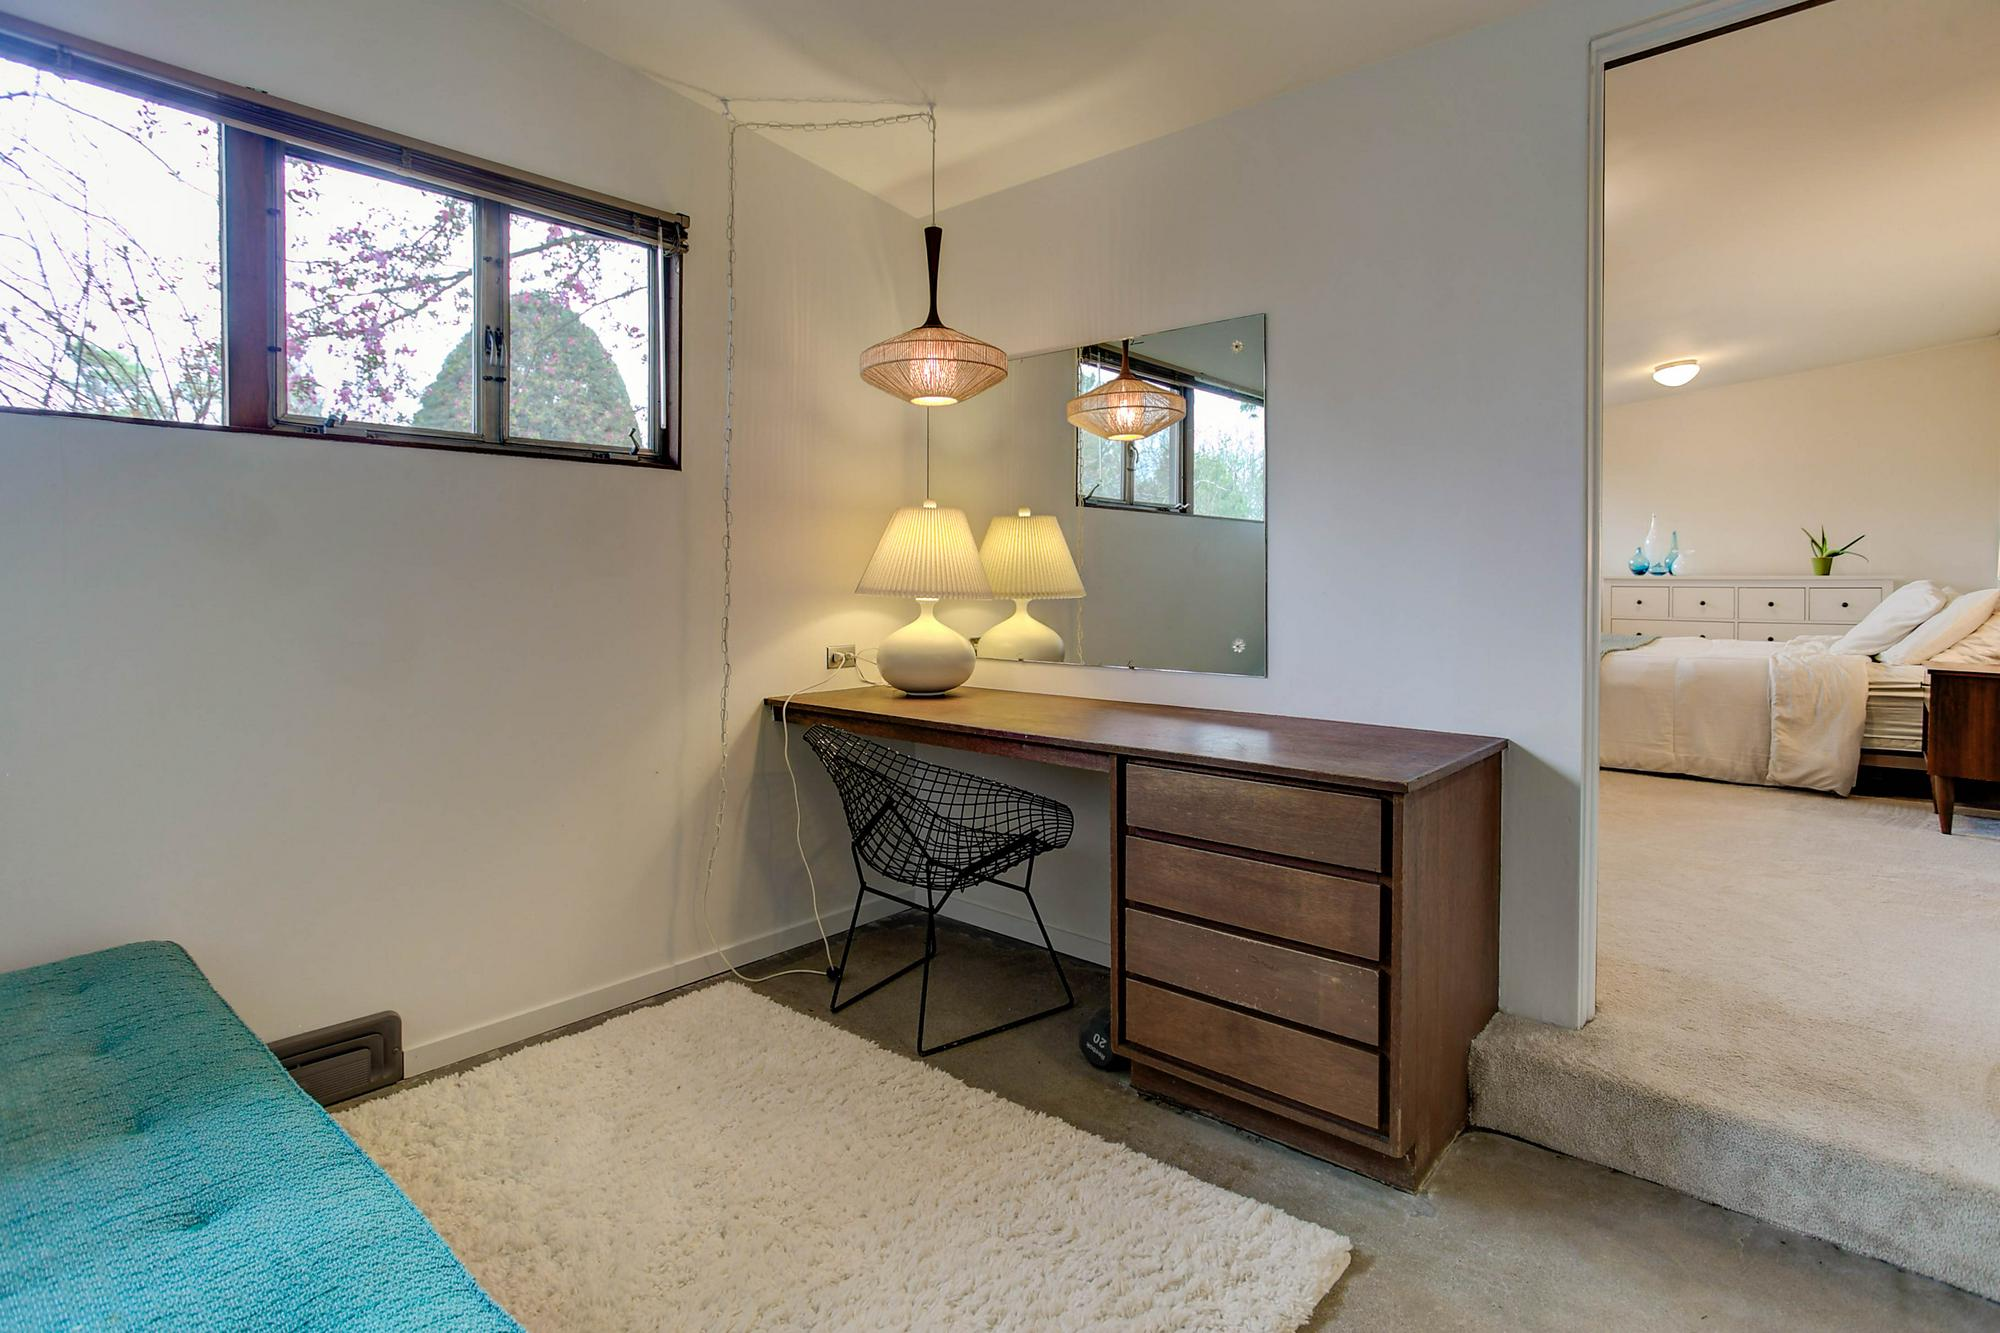 Listassistimage-84043-web_ready-3011%2bsouth%2bfranklin%2bstreet_masterbedrooma-2000x2000